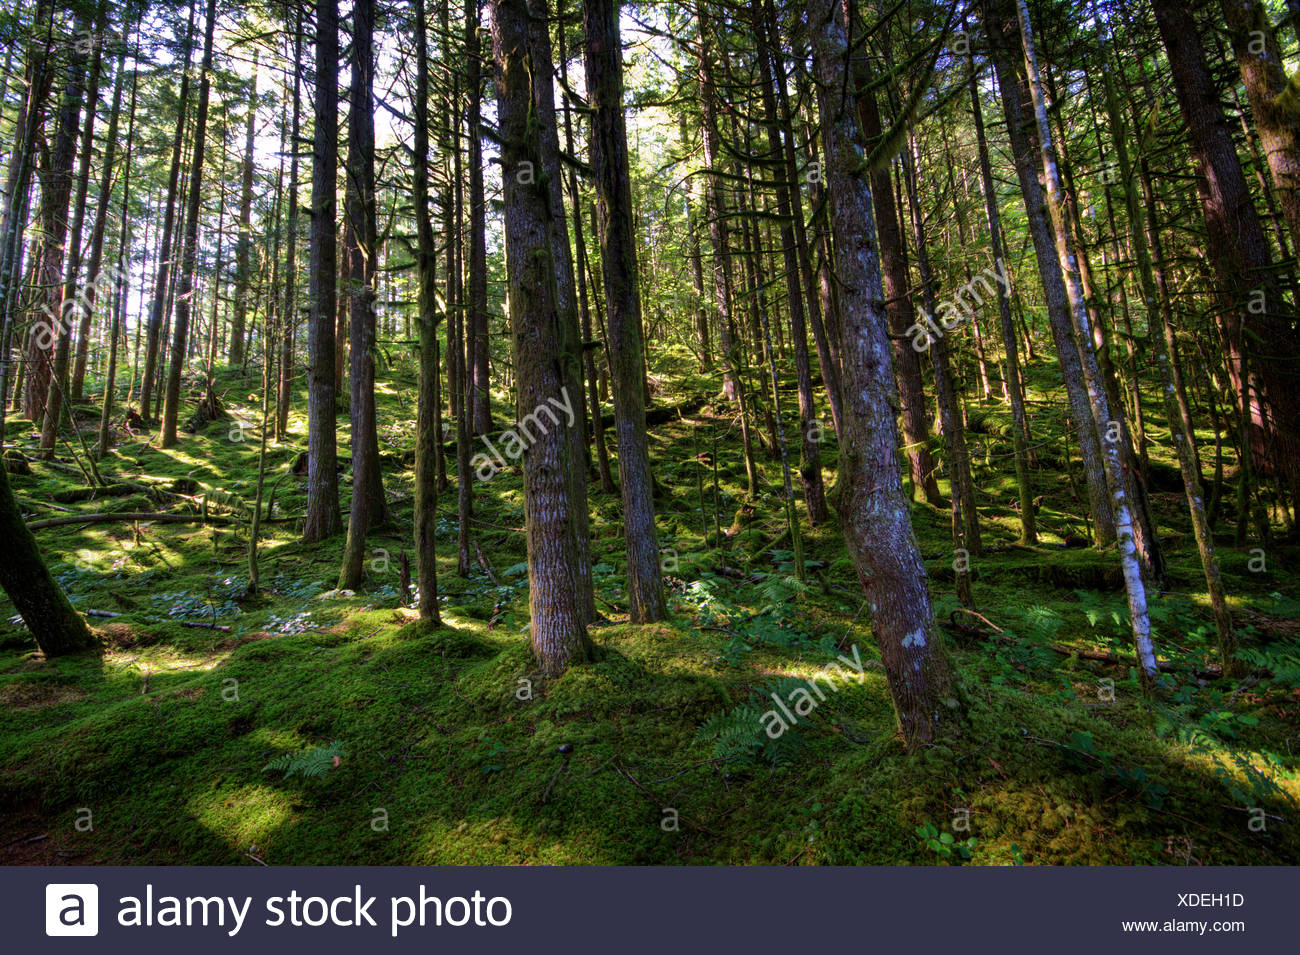 Magical moss covered temperate rain forest near Harrison Mills, BC - Stock Image